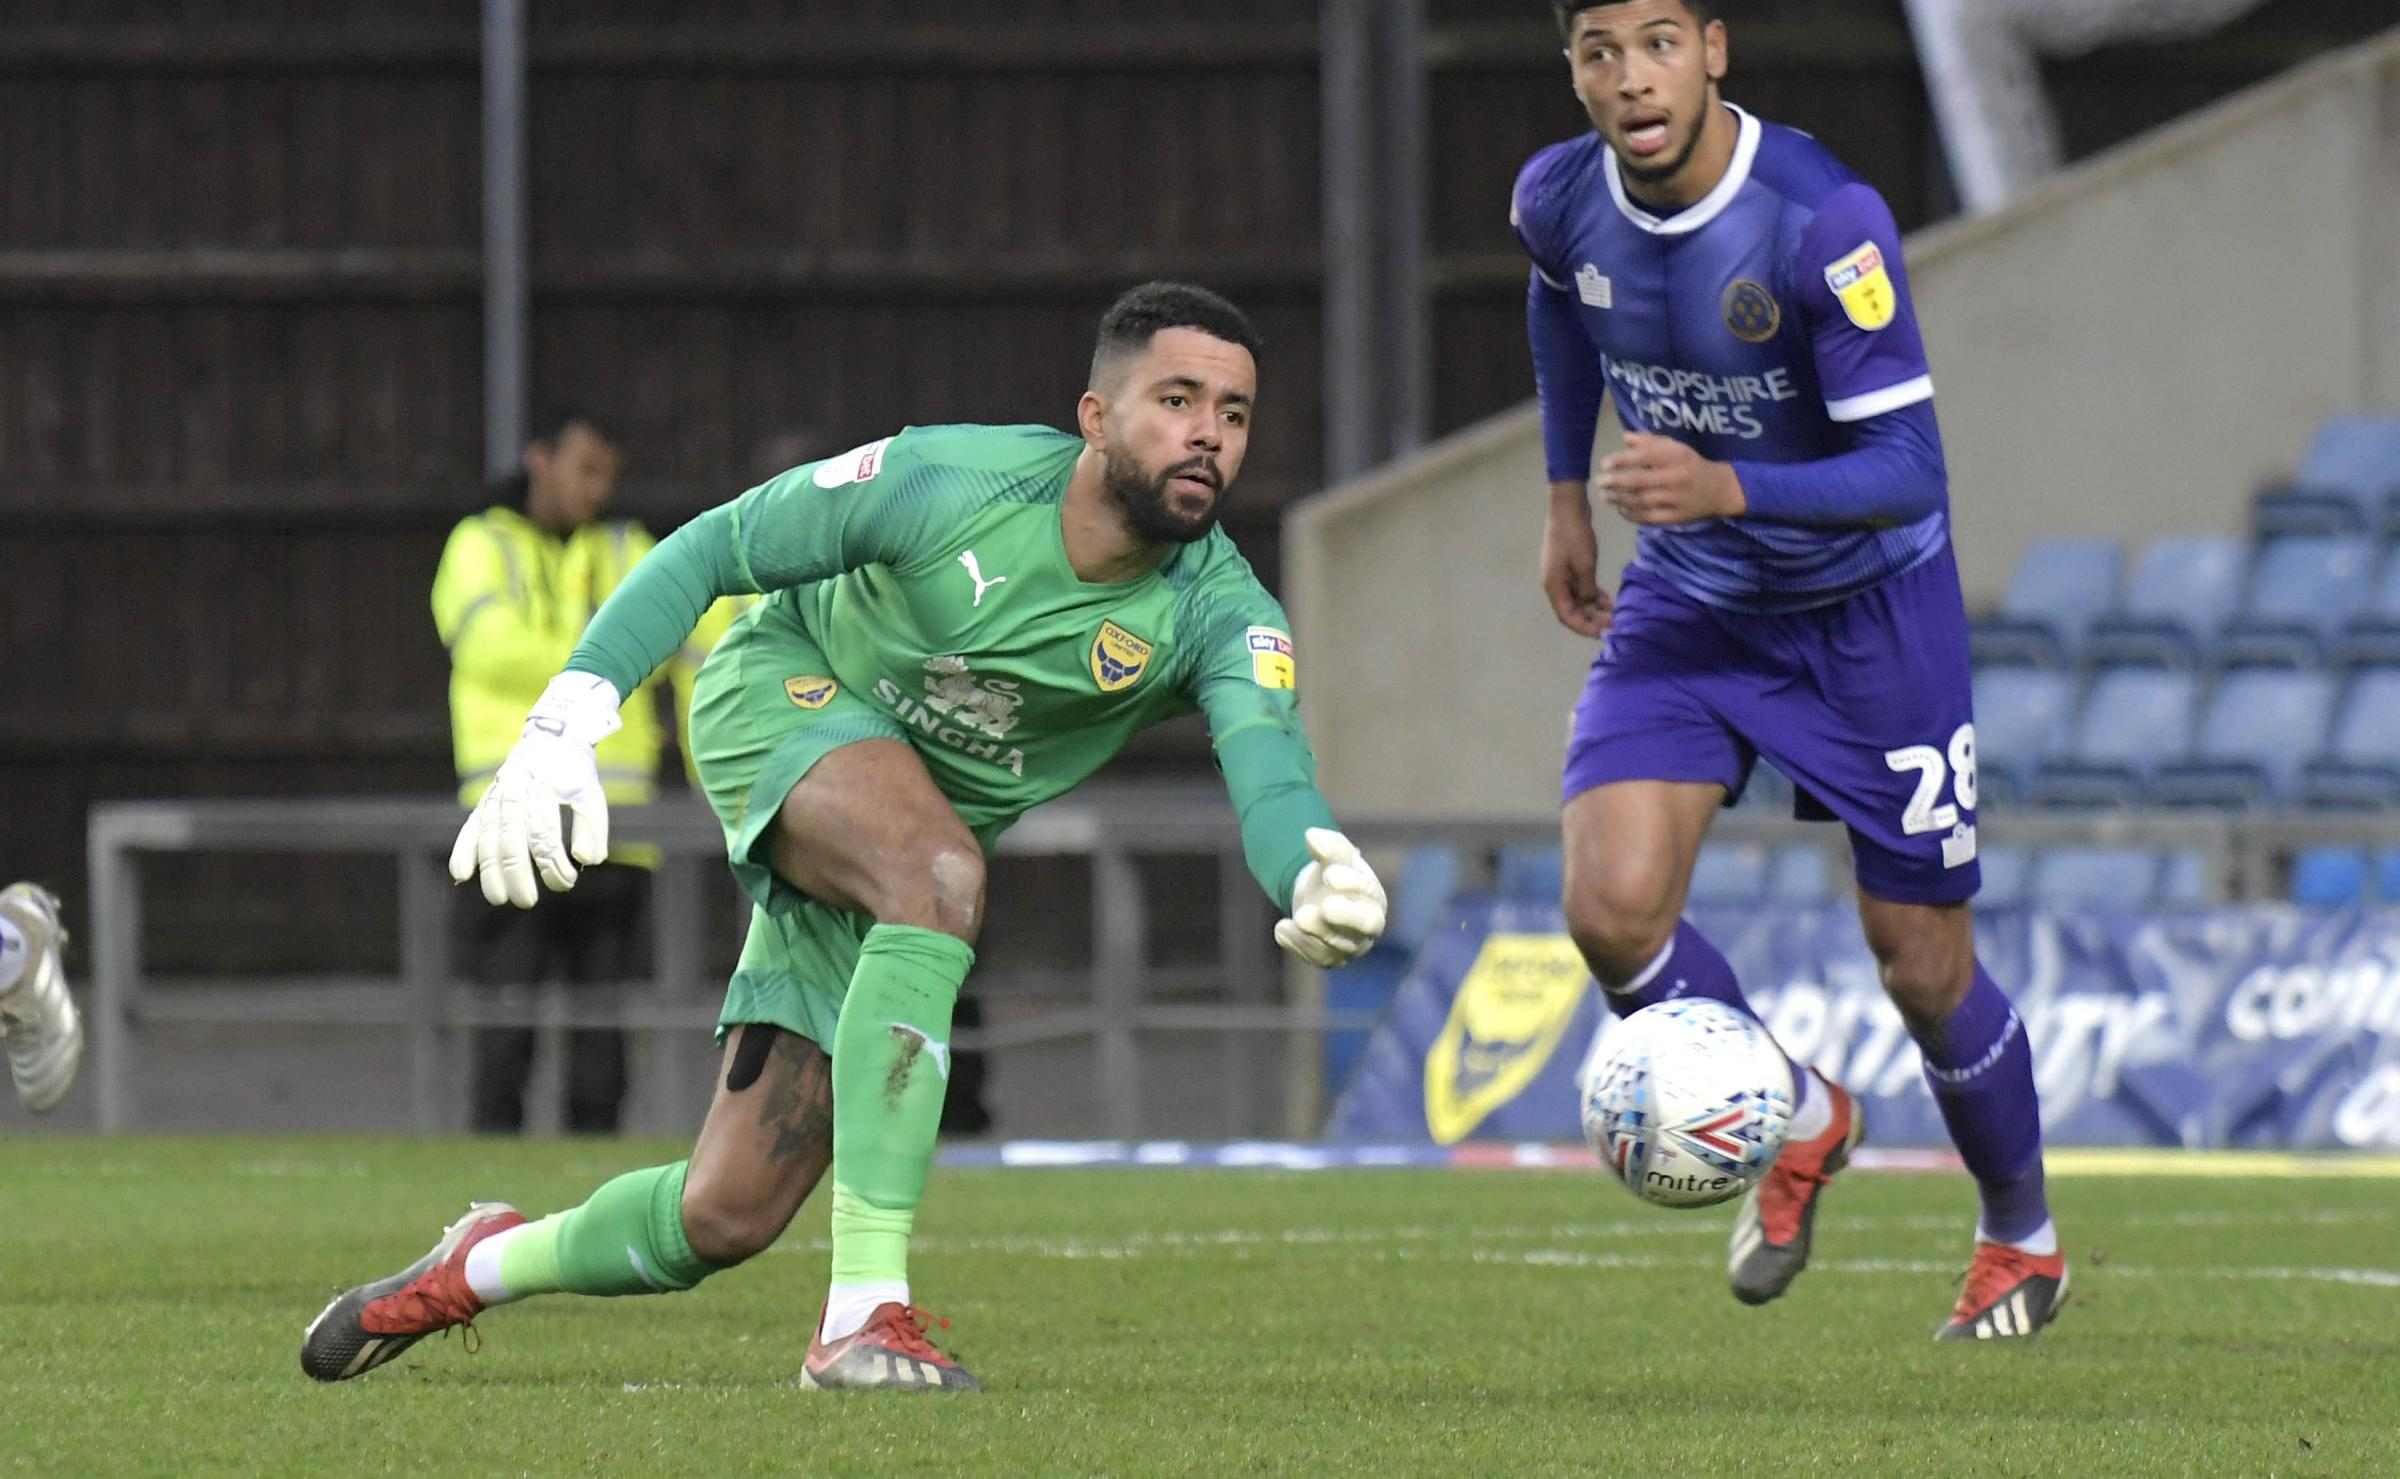 Second time lucky for Jordan Archer at Middlesbrough